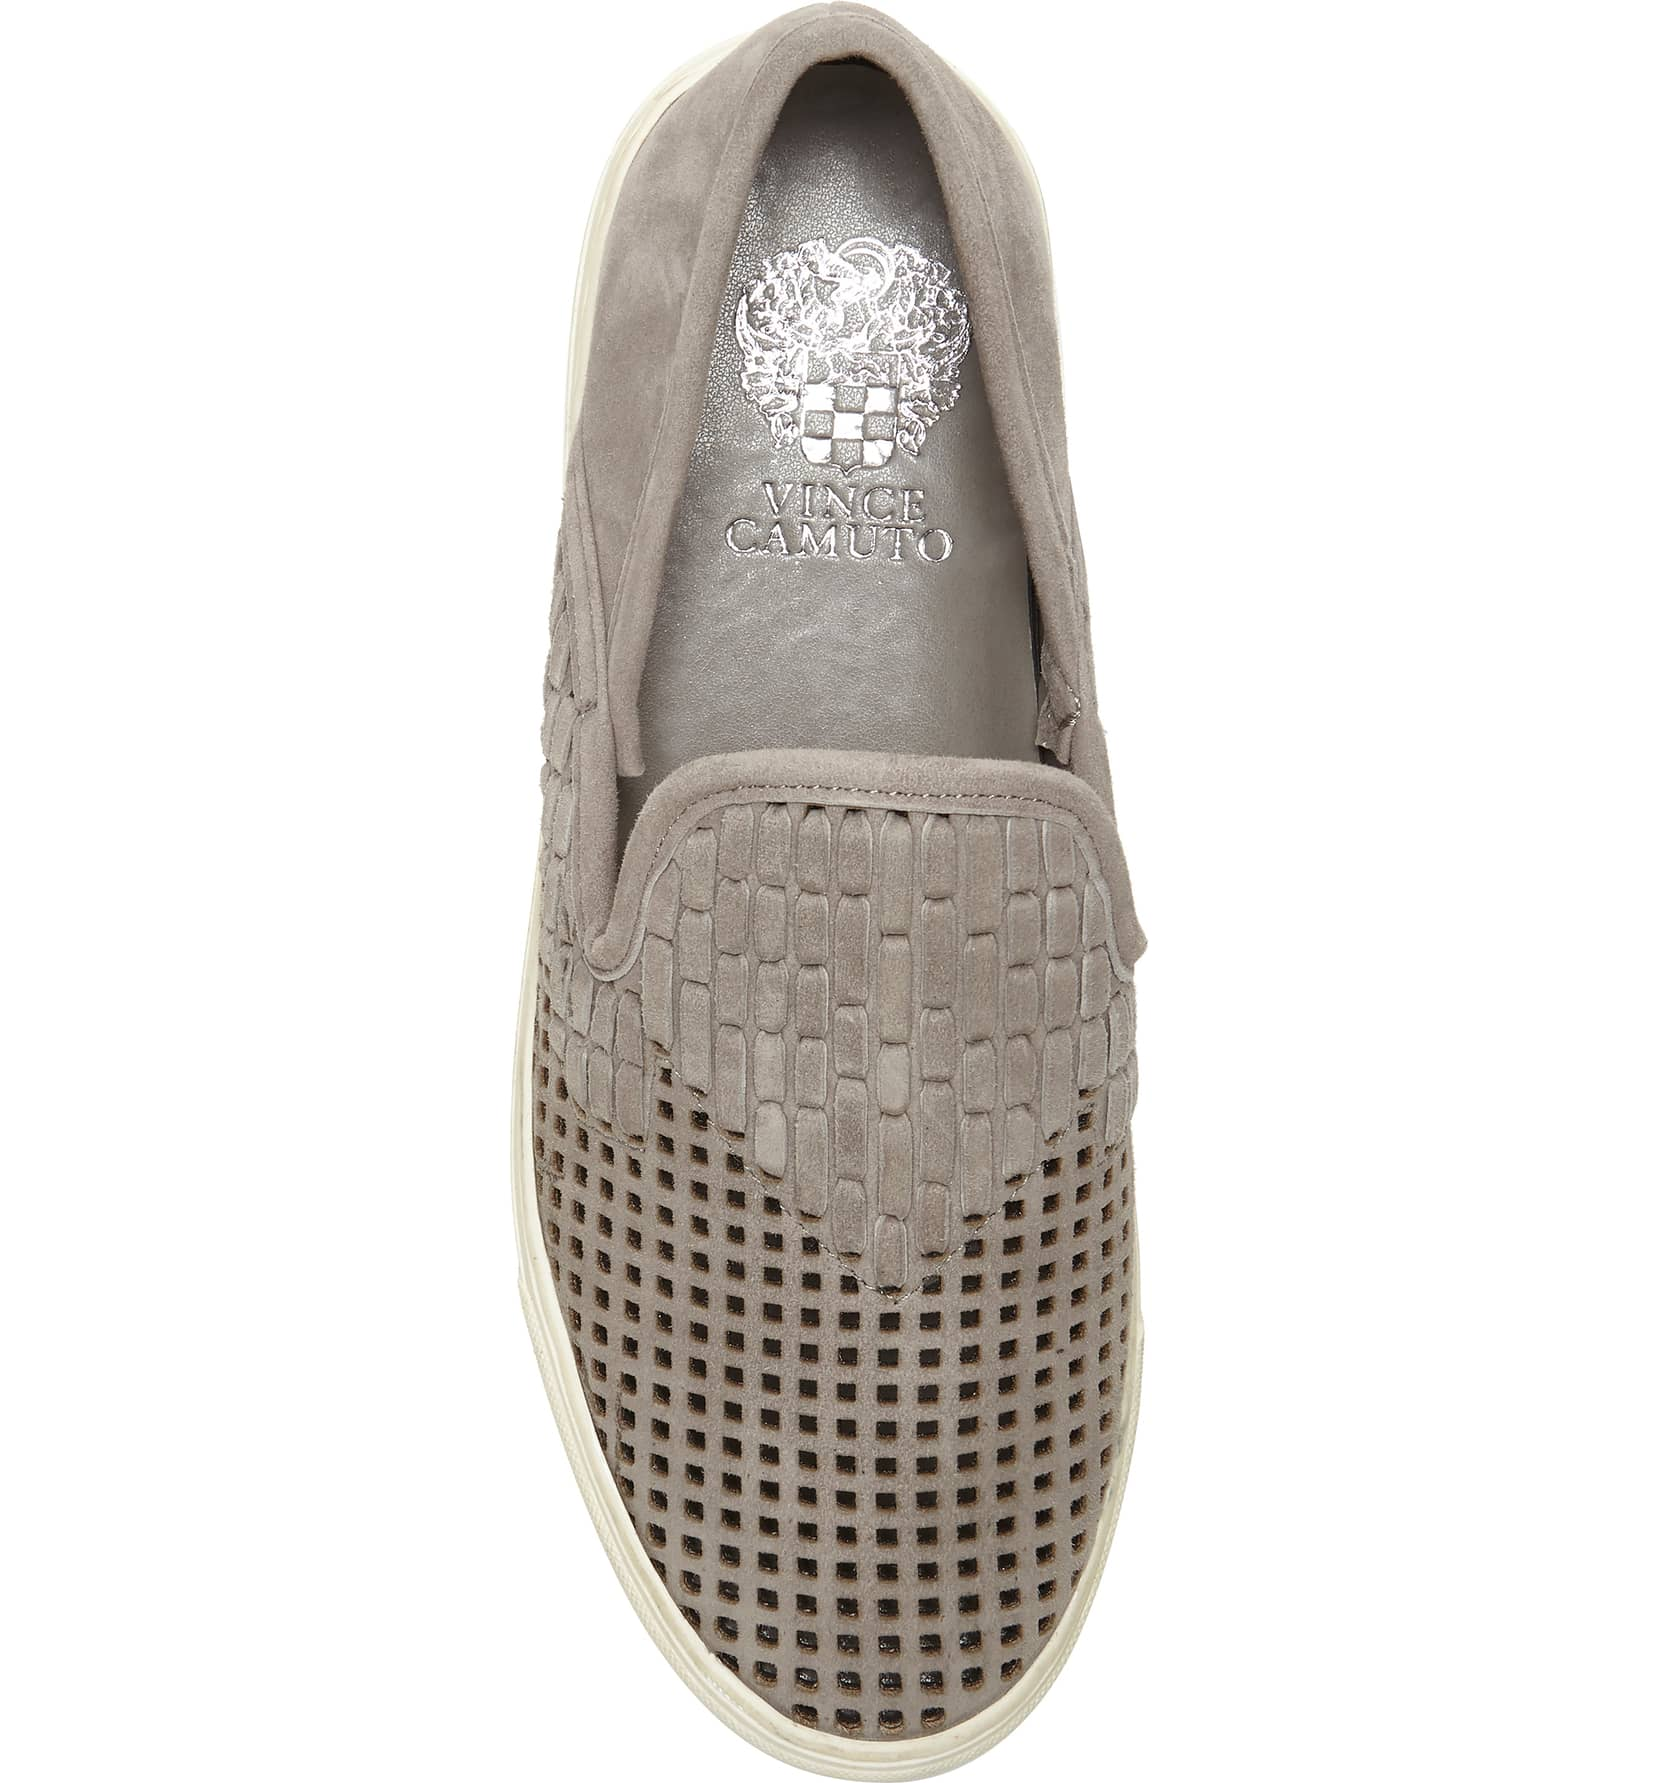 Vince-Camuto-Bristie-Storm-Grey-Leather-Woven-White-Sole-Slip-On-Sneakers thumbnail 10